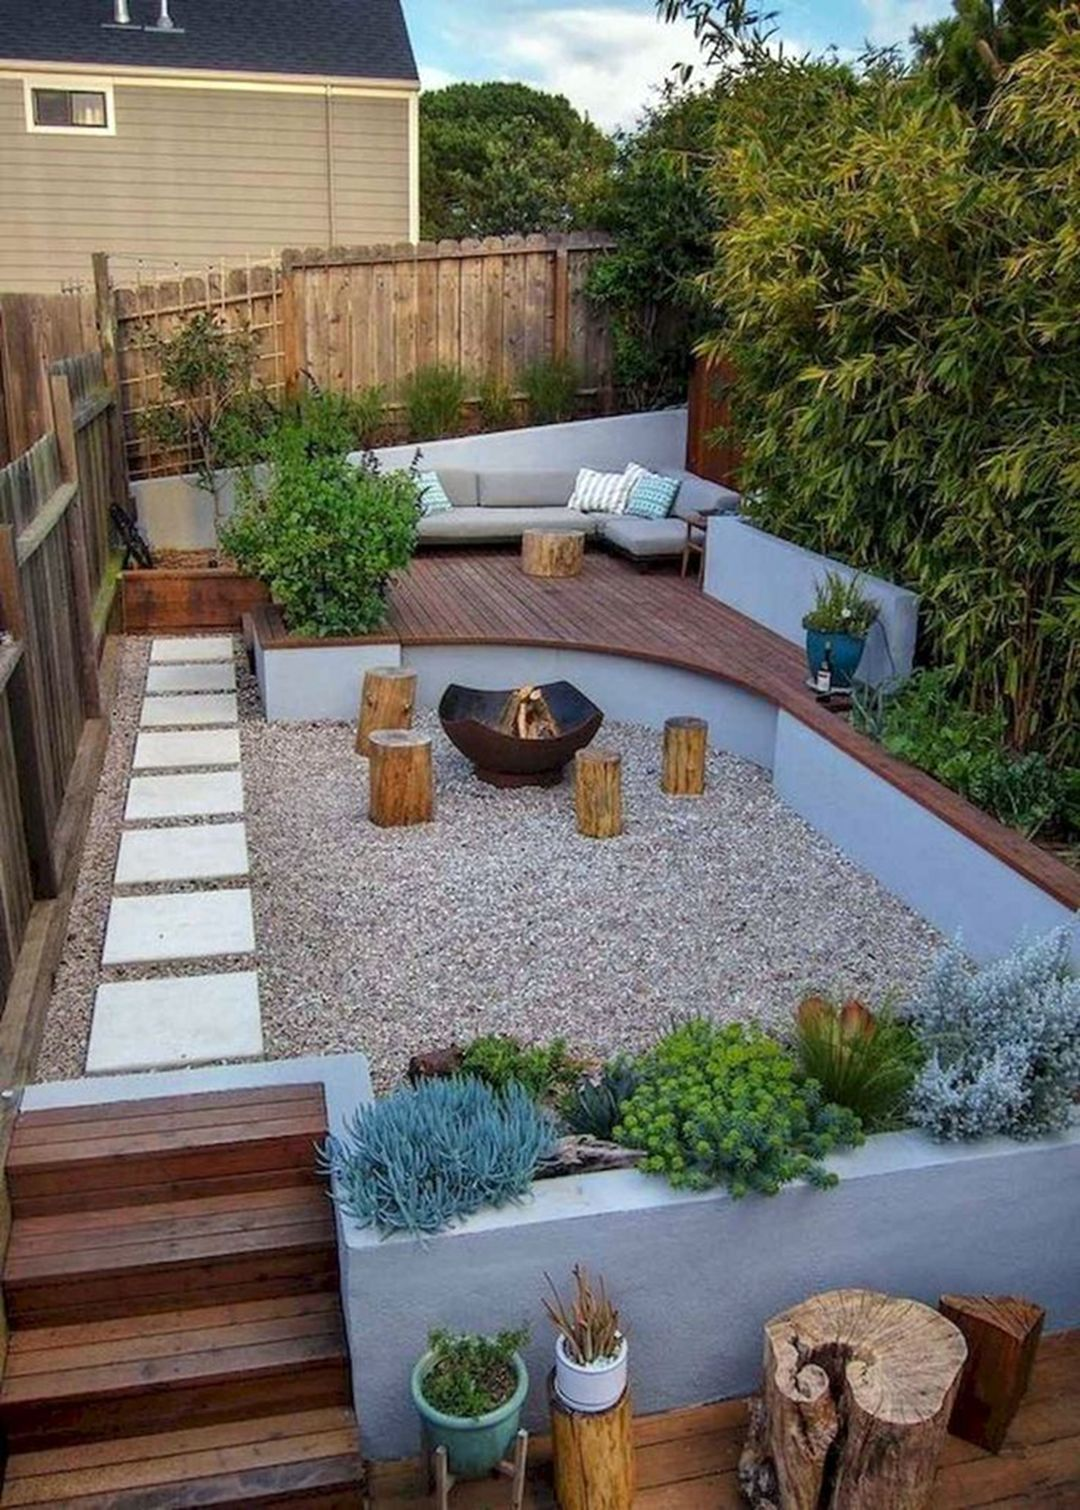 13 Amazing Multi Level Garden Ideas You Need To Try To Your Yard